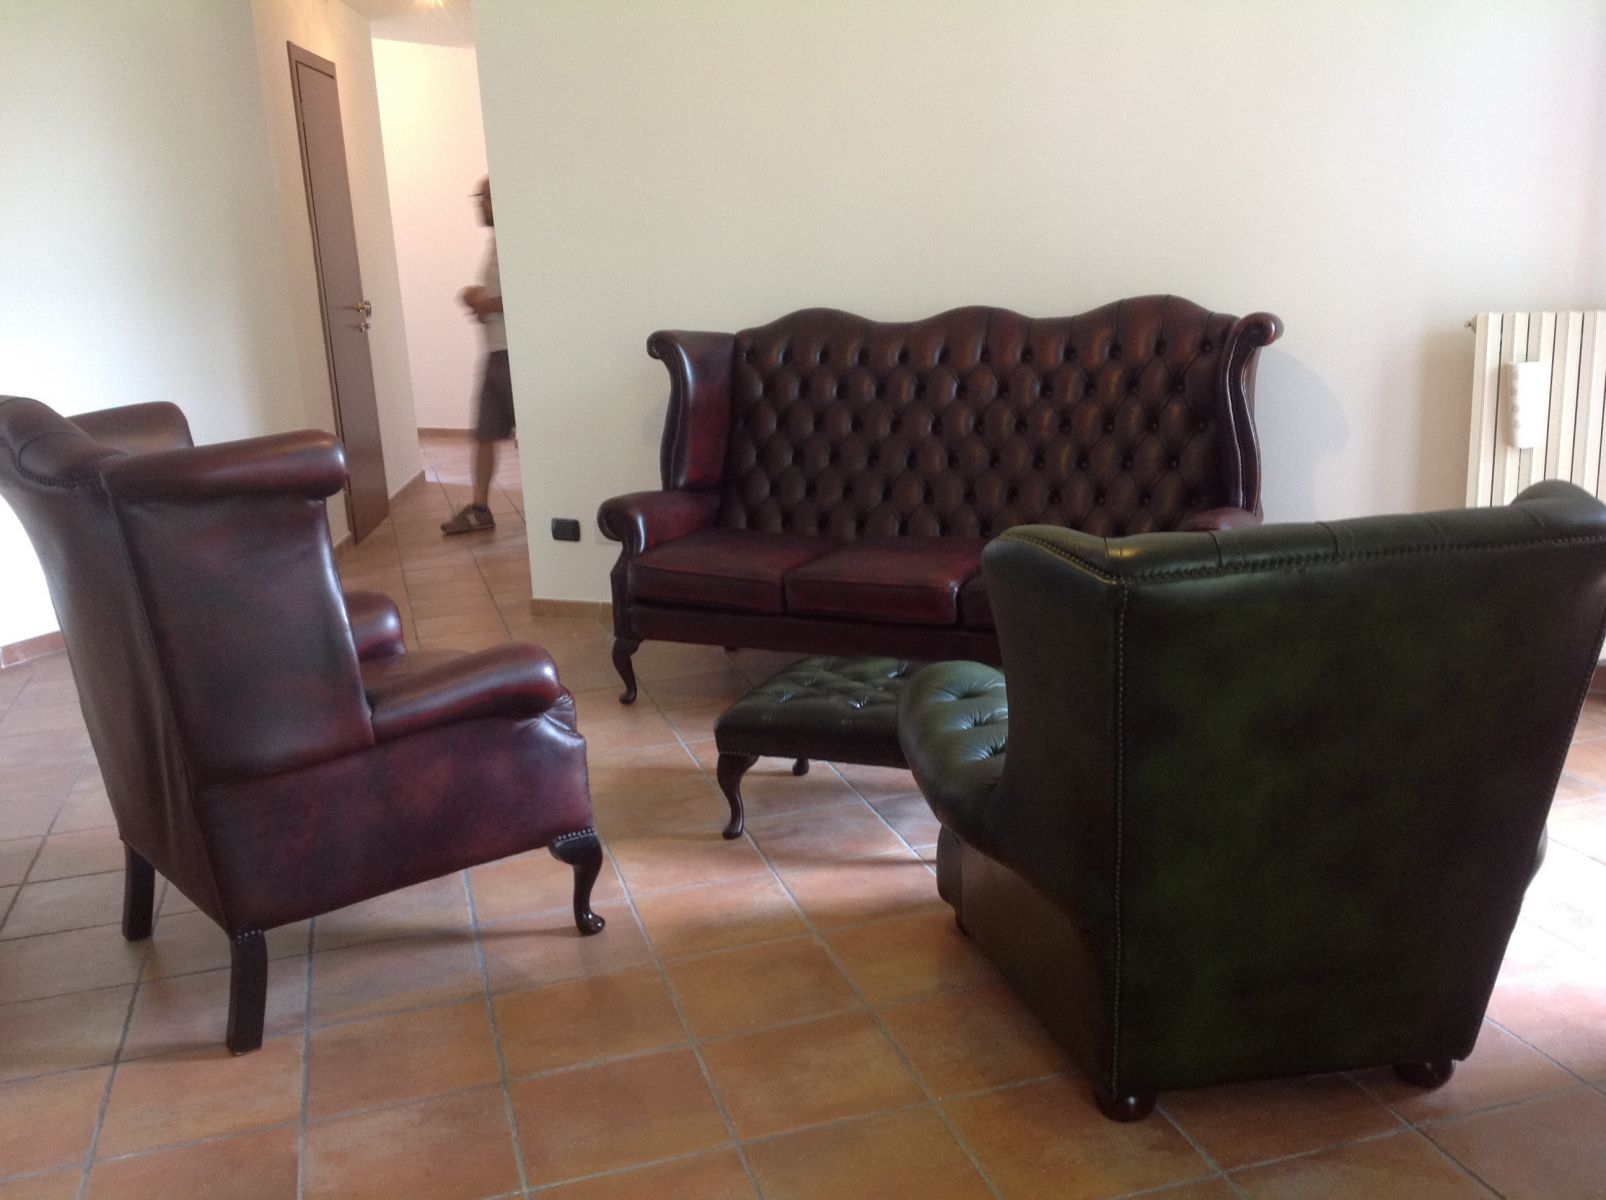 Example of furniture for a home img_7514.jpg